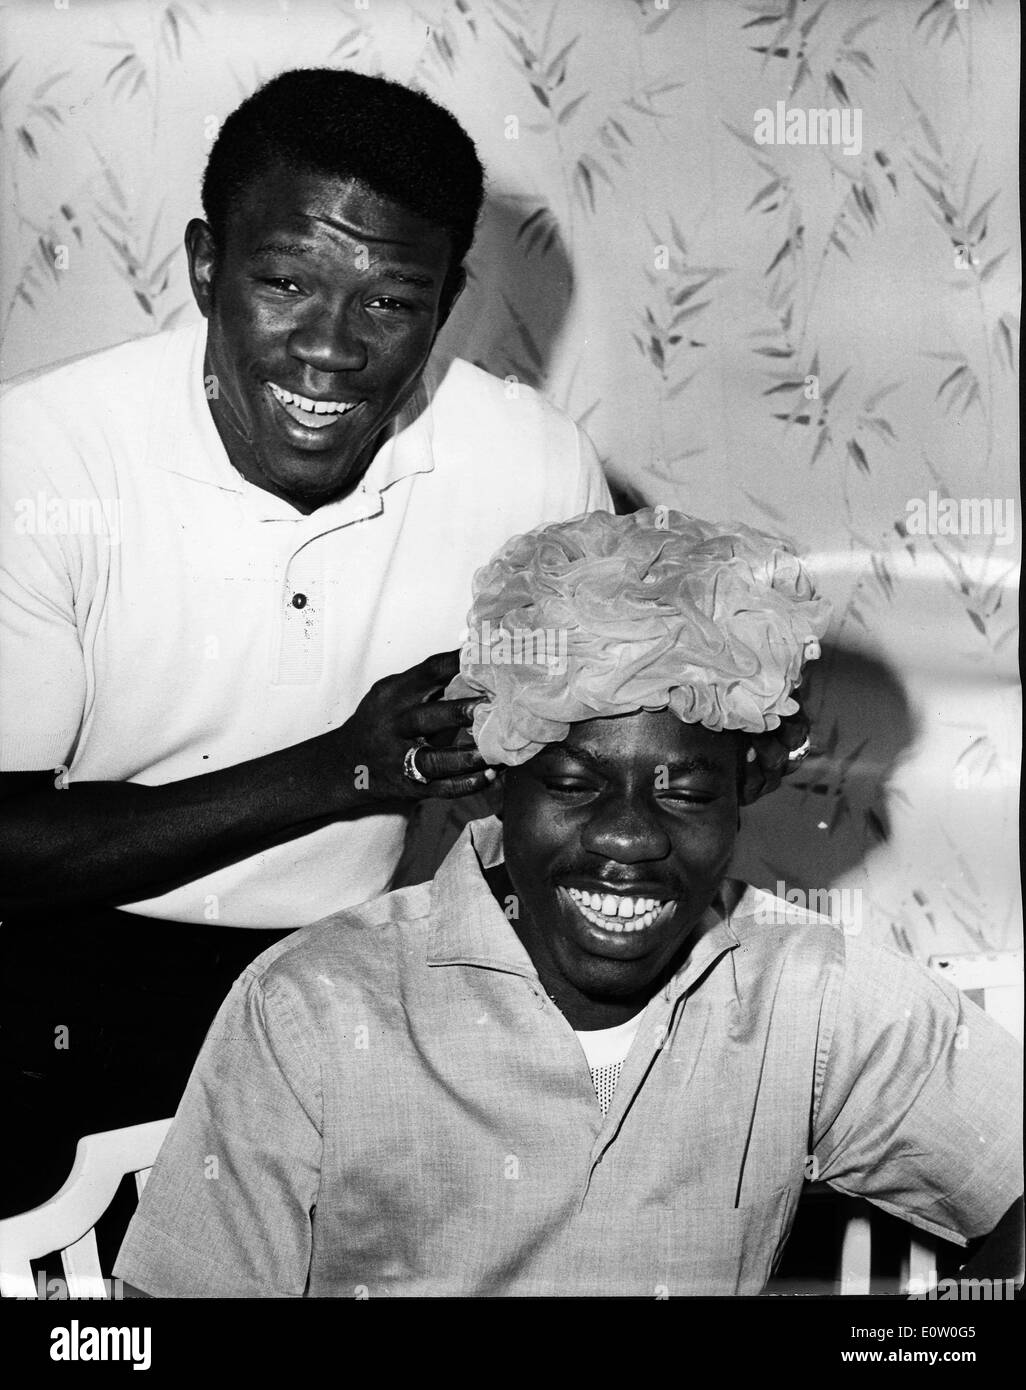 Boxer Emile Griffith goofing around with a friend - Stock Image